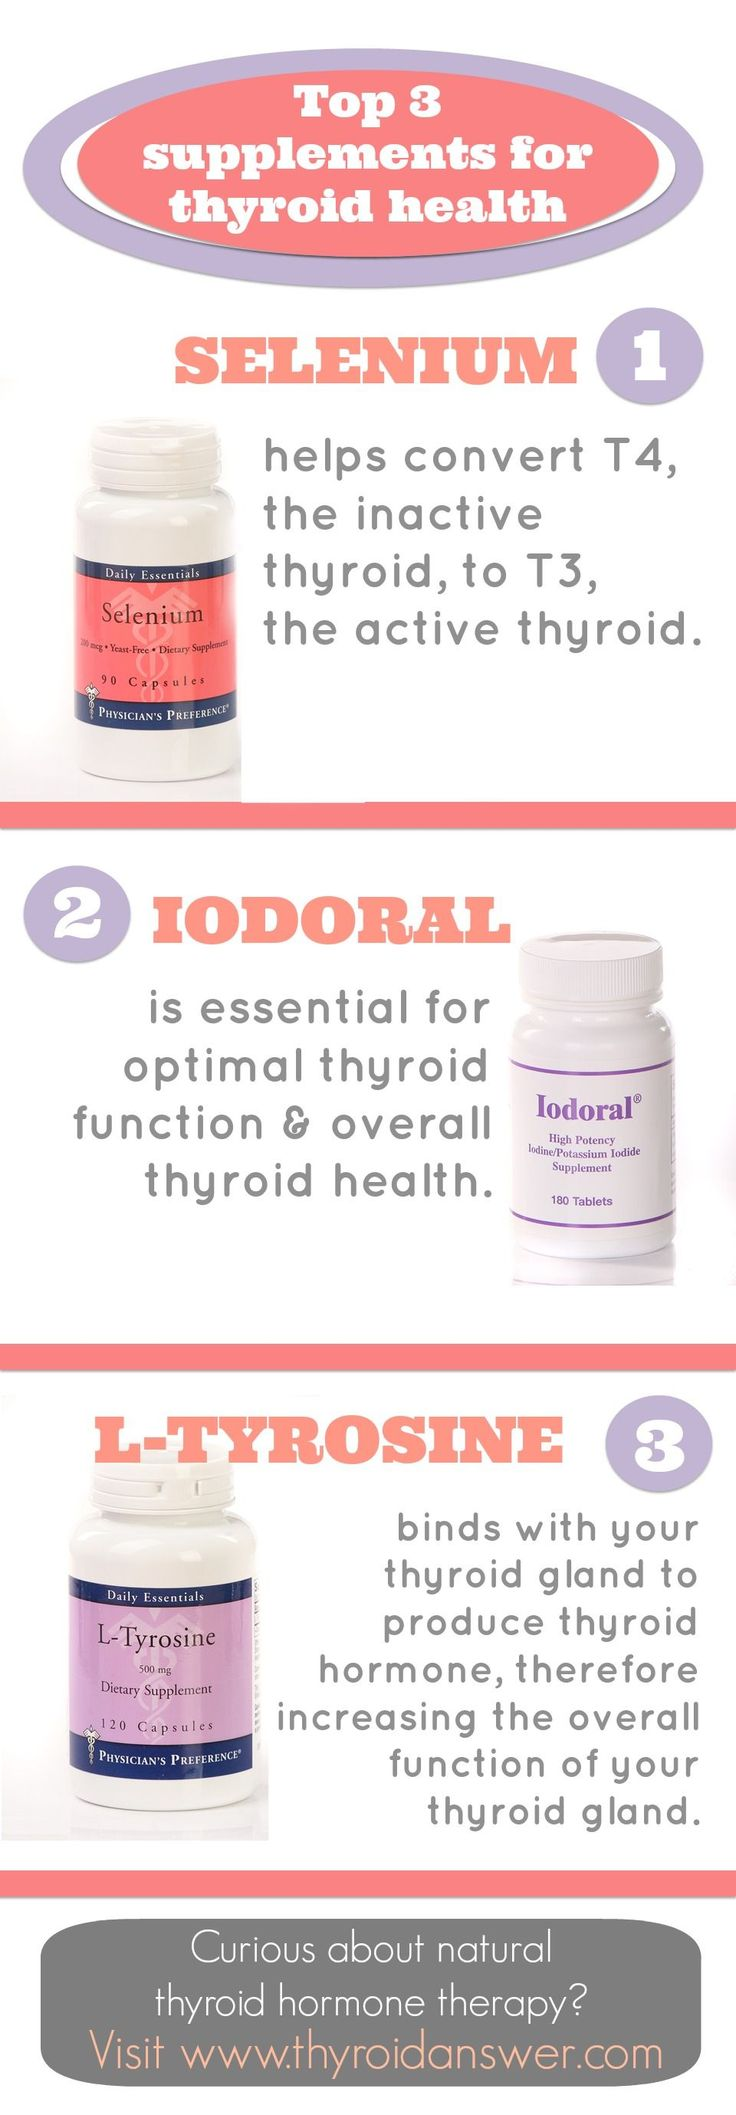 THE BEST SUPPLEMENT TO ENHANCE PERFORMANCE! Top 3 Supplements for Thyroid Health Be careful if you have Hashimotos though --iodoral can make it worse